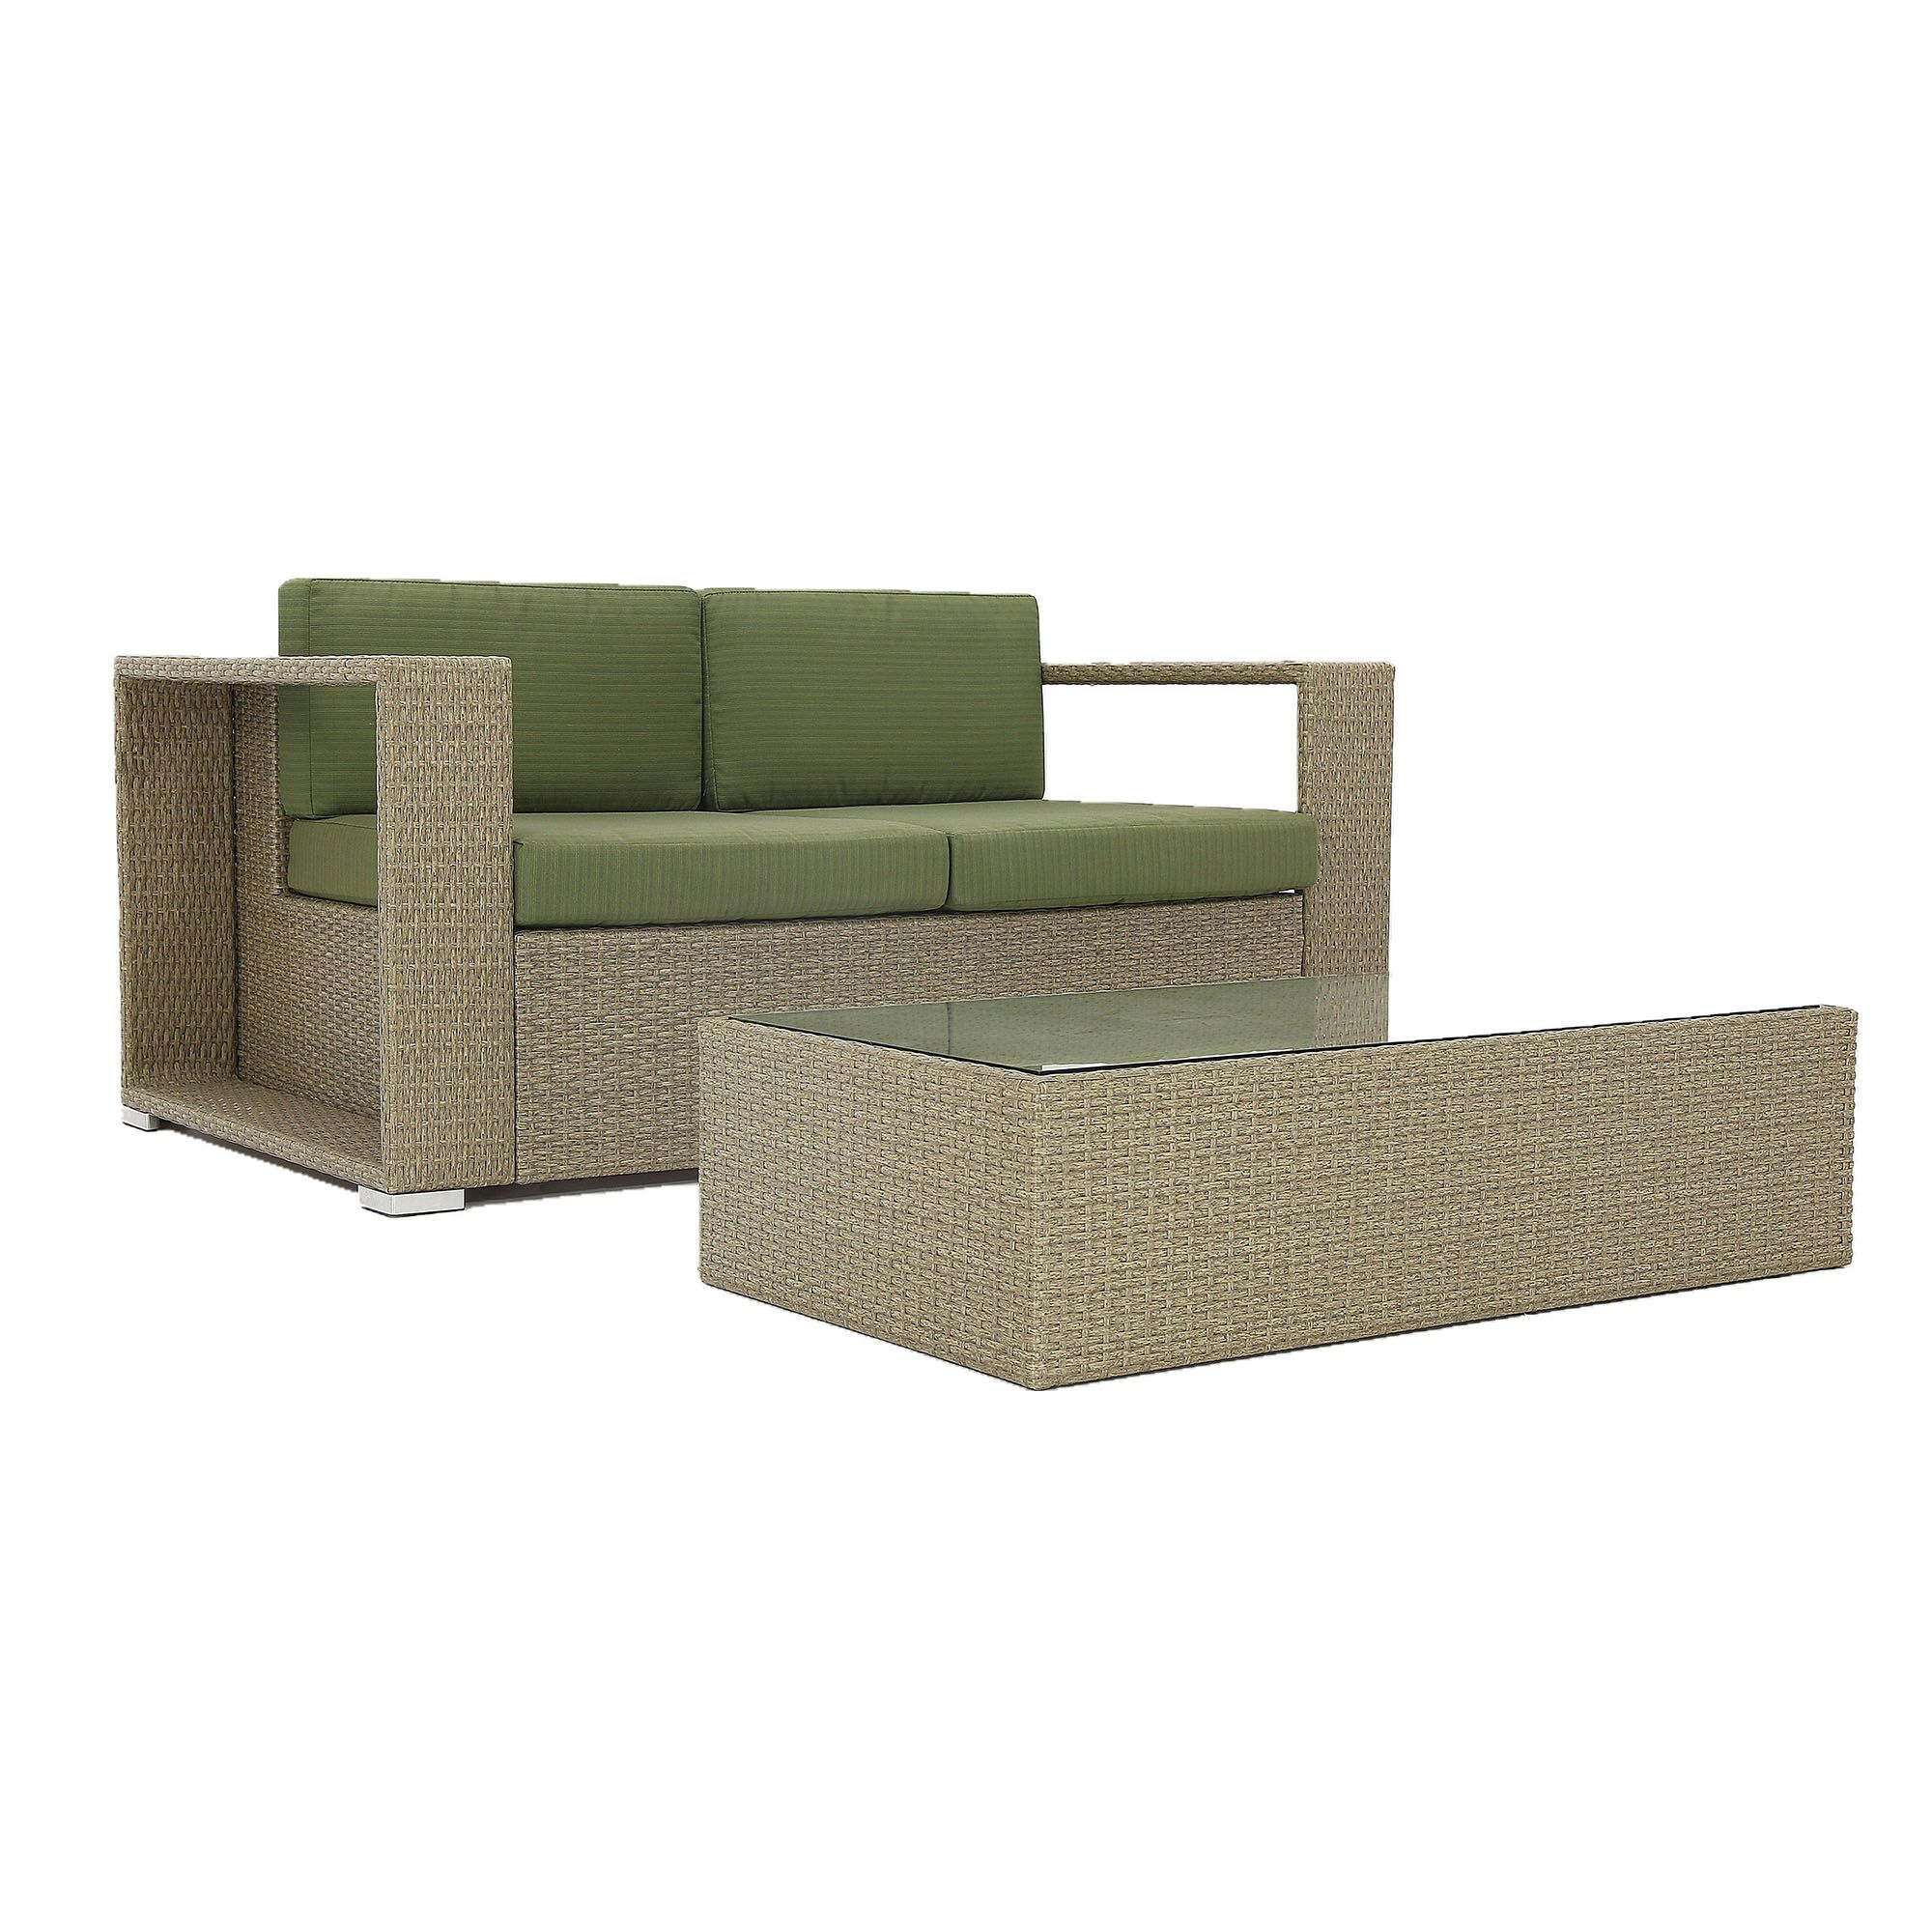 Rickey 2 Piece Conversation Set with Cushions